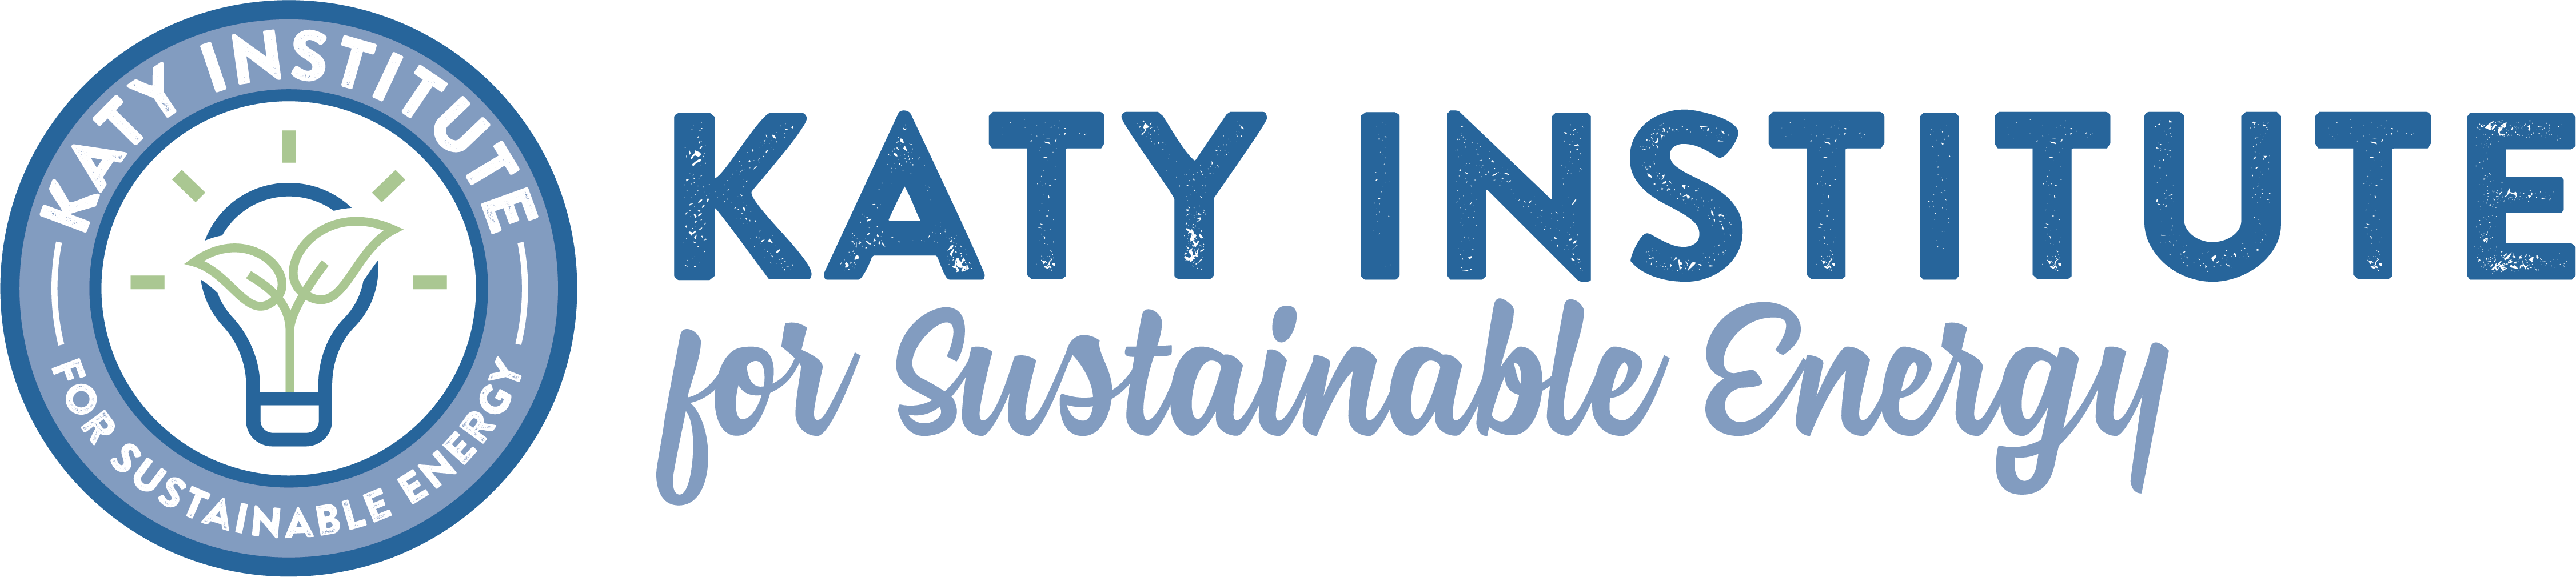 Katy Institute for Sustainable Energy